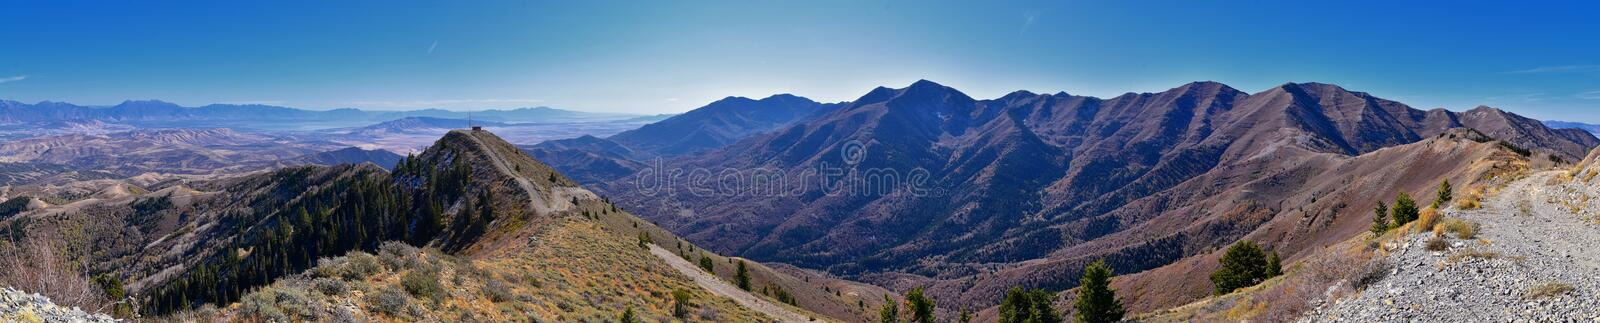 Wasatch Front Rocky Mountain landscapes from Oquirrh range looking at Utah Lake during fall. Panorama views near Provo, Timpanogos. Lone and Twin Peaks. Salt stock images